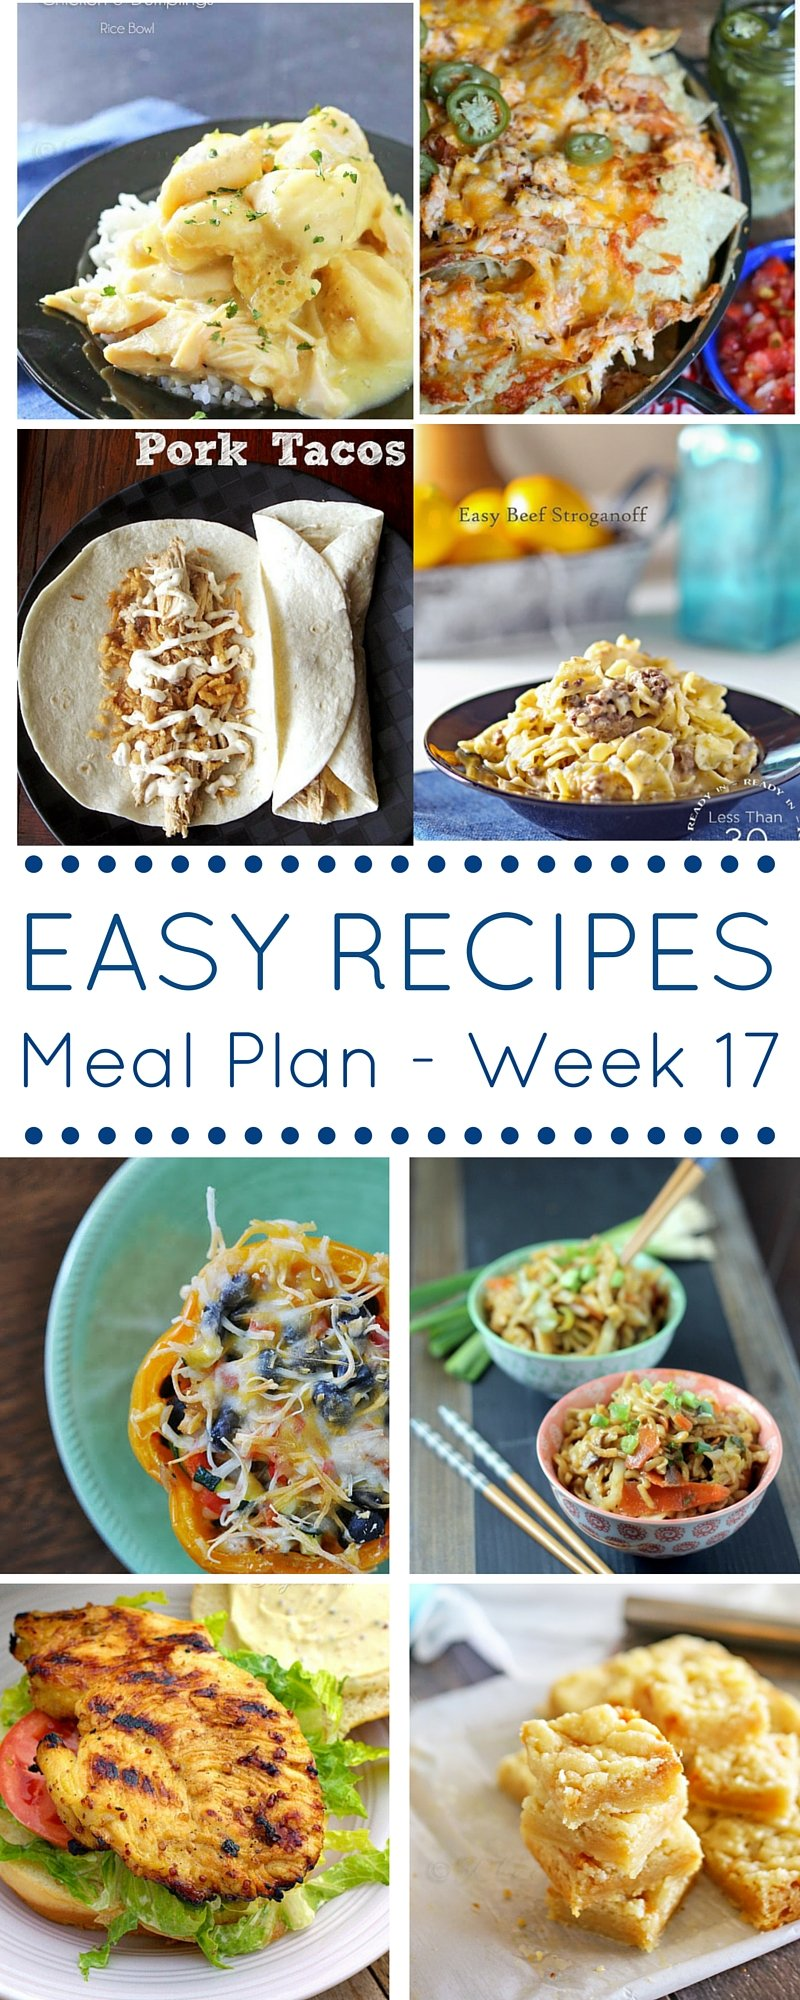 Easy Recipes Meal plan week 16 - delicious dinners and a dessert!